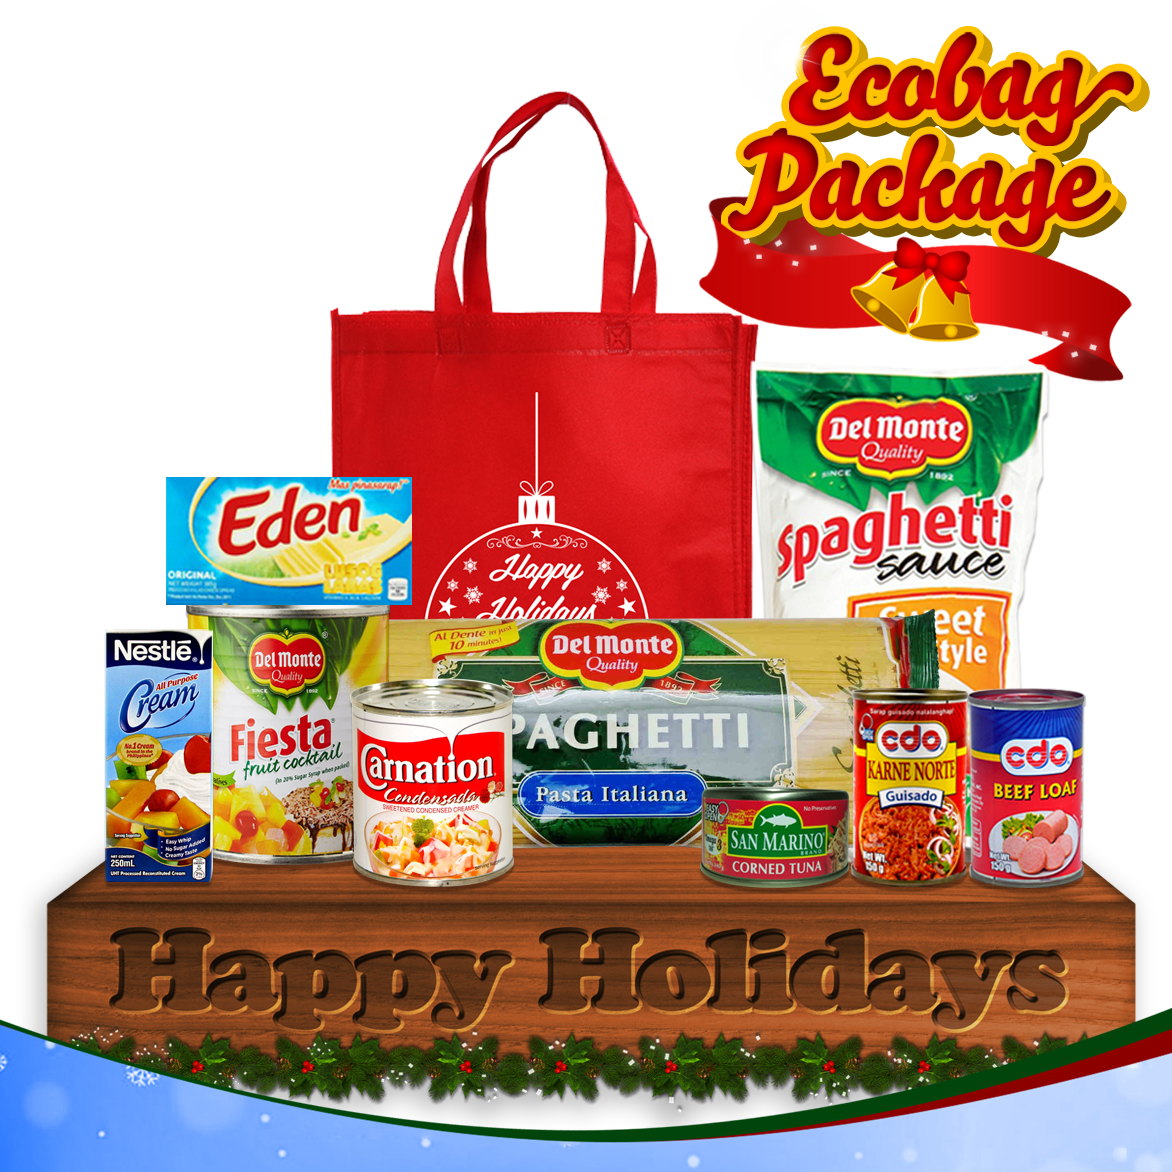 Exciting Holiday Bundle